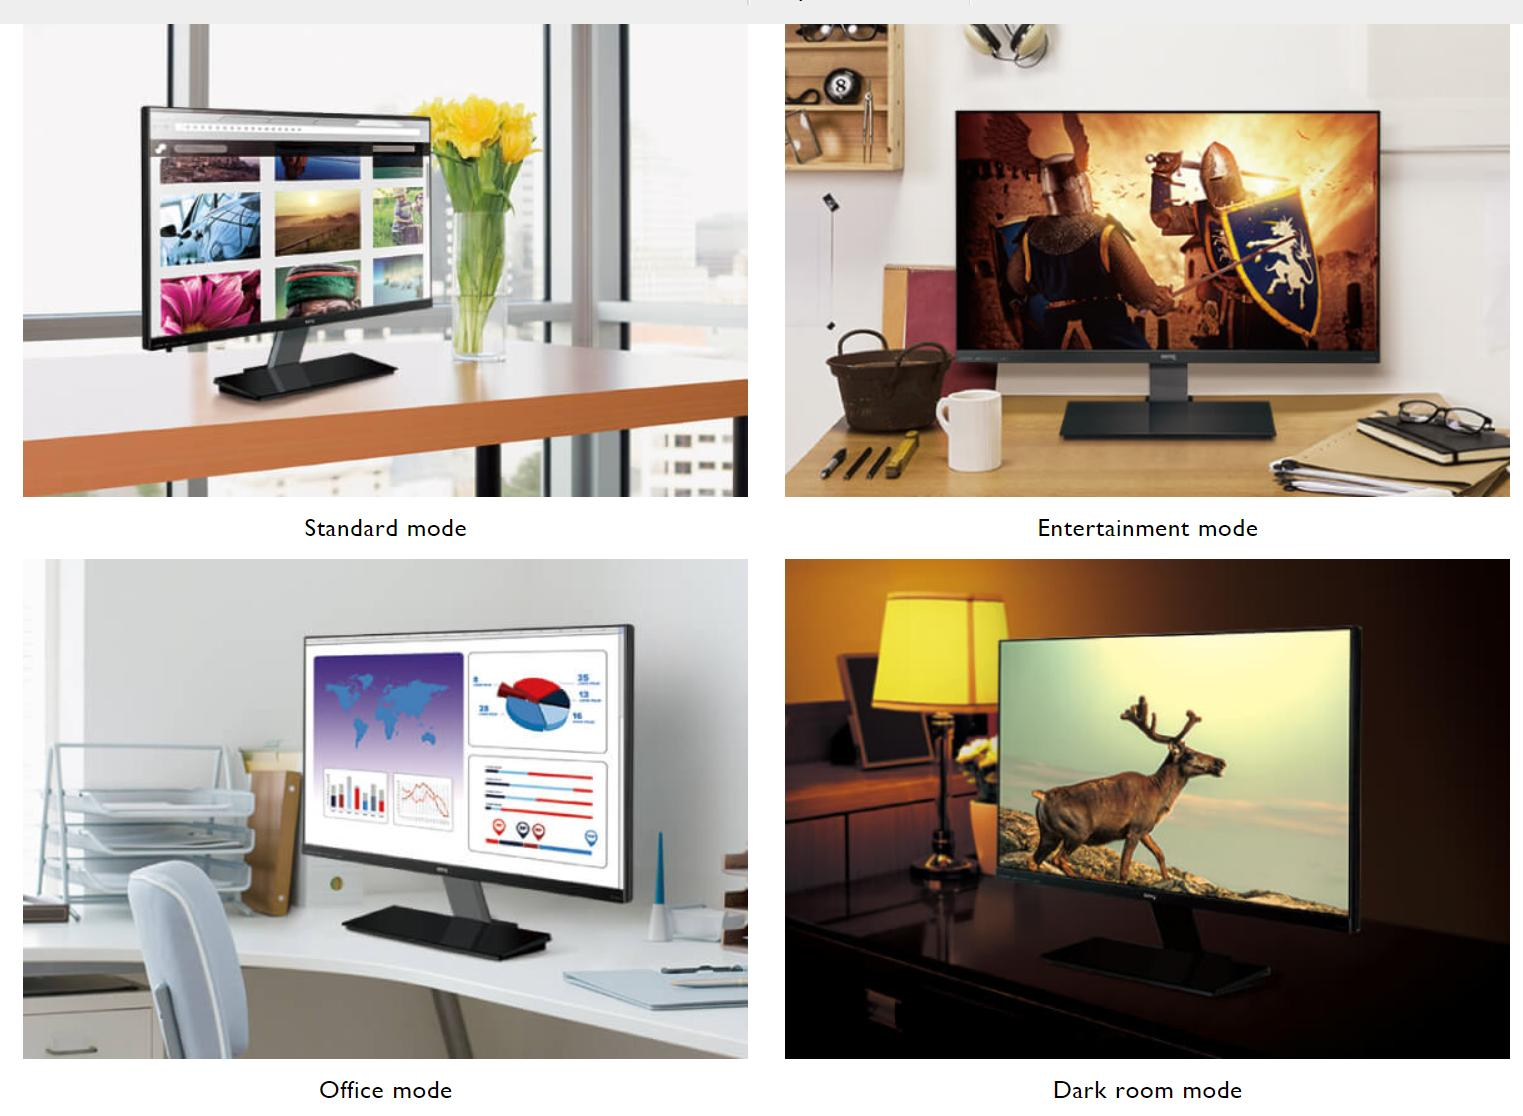 Benq Ew2445zh 24 Inch Full Hd Hdmi Entertainment Led Eye Care Ultra Slim Bezel 4 User Scenario Modes Offer The Best Viewing Experience